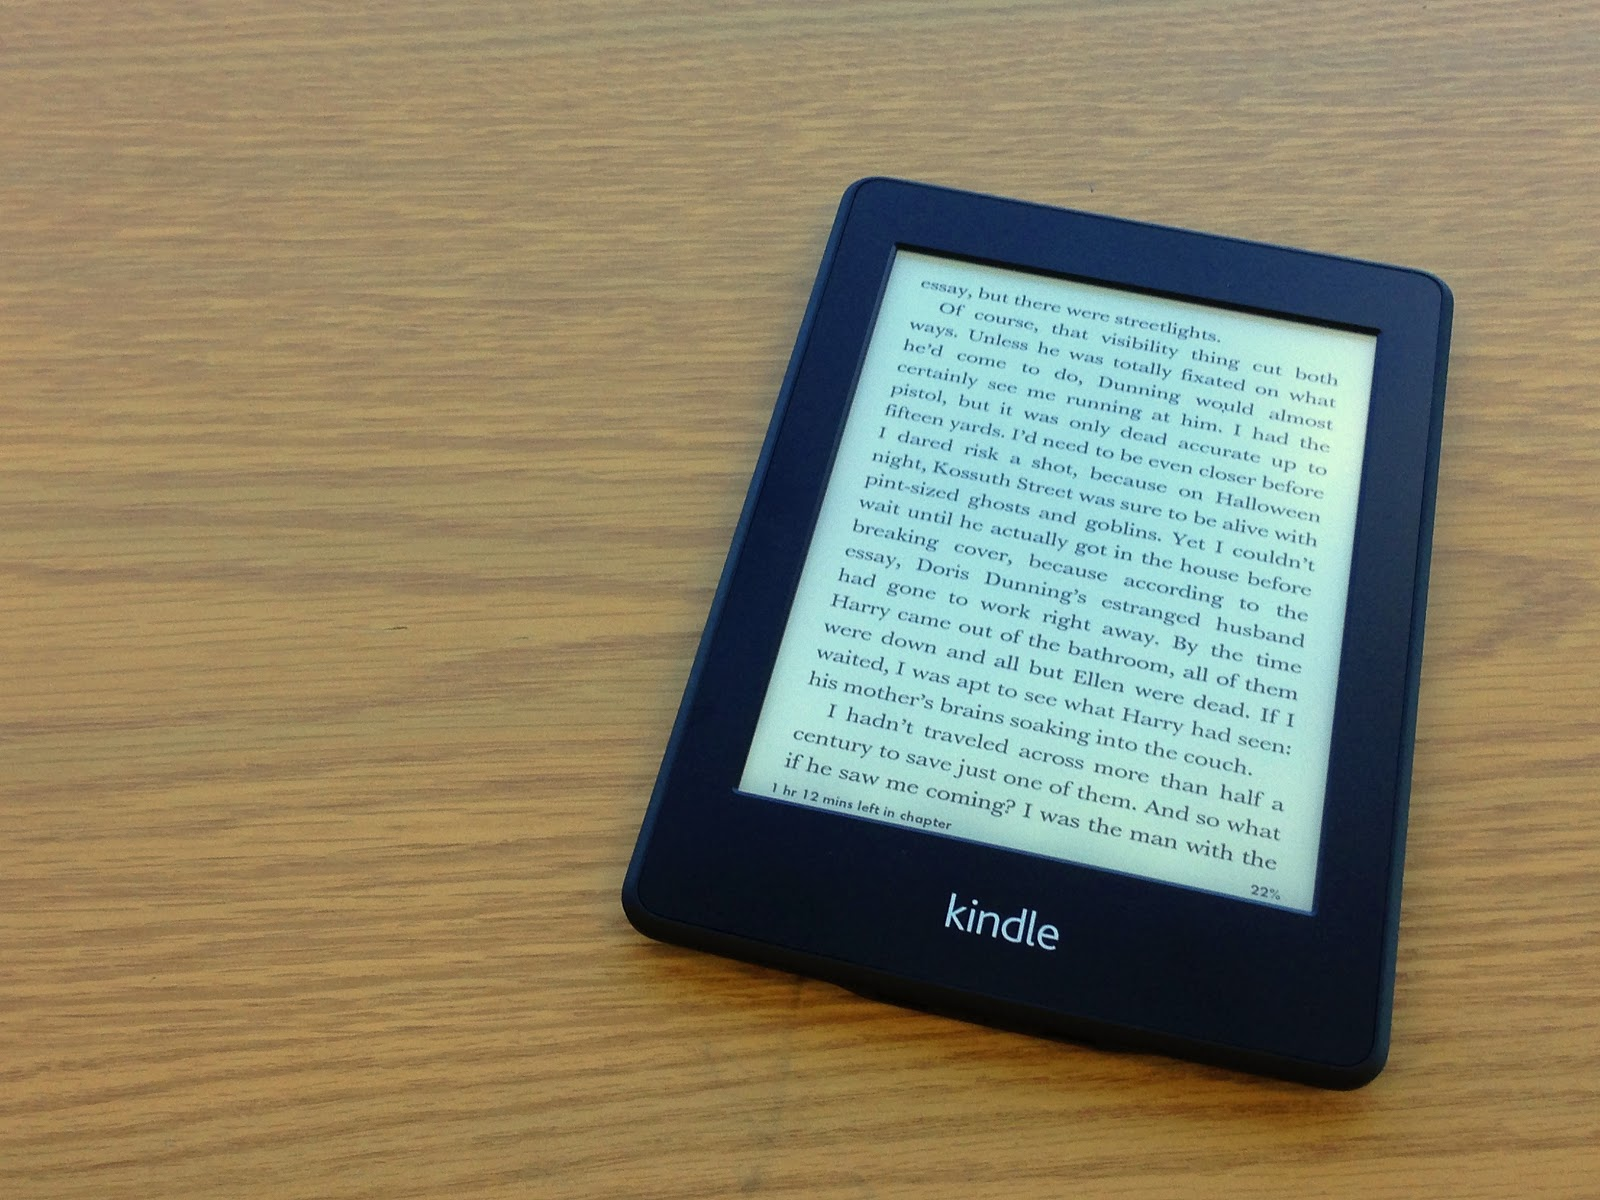 rnit review kindle paperwhite the cheaper model does not have a regular keyboard if you take lots of notes in your books you want to go the paperwhite model because it has a